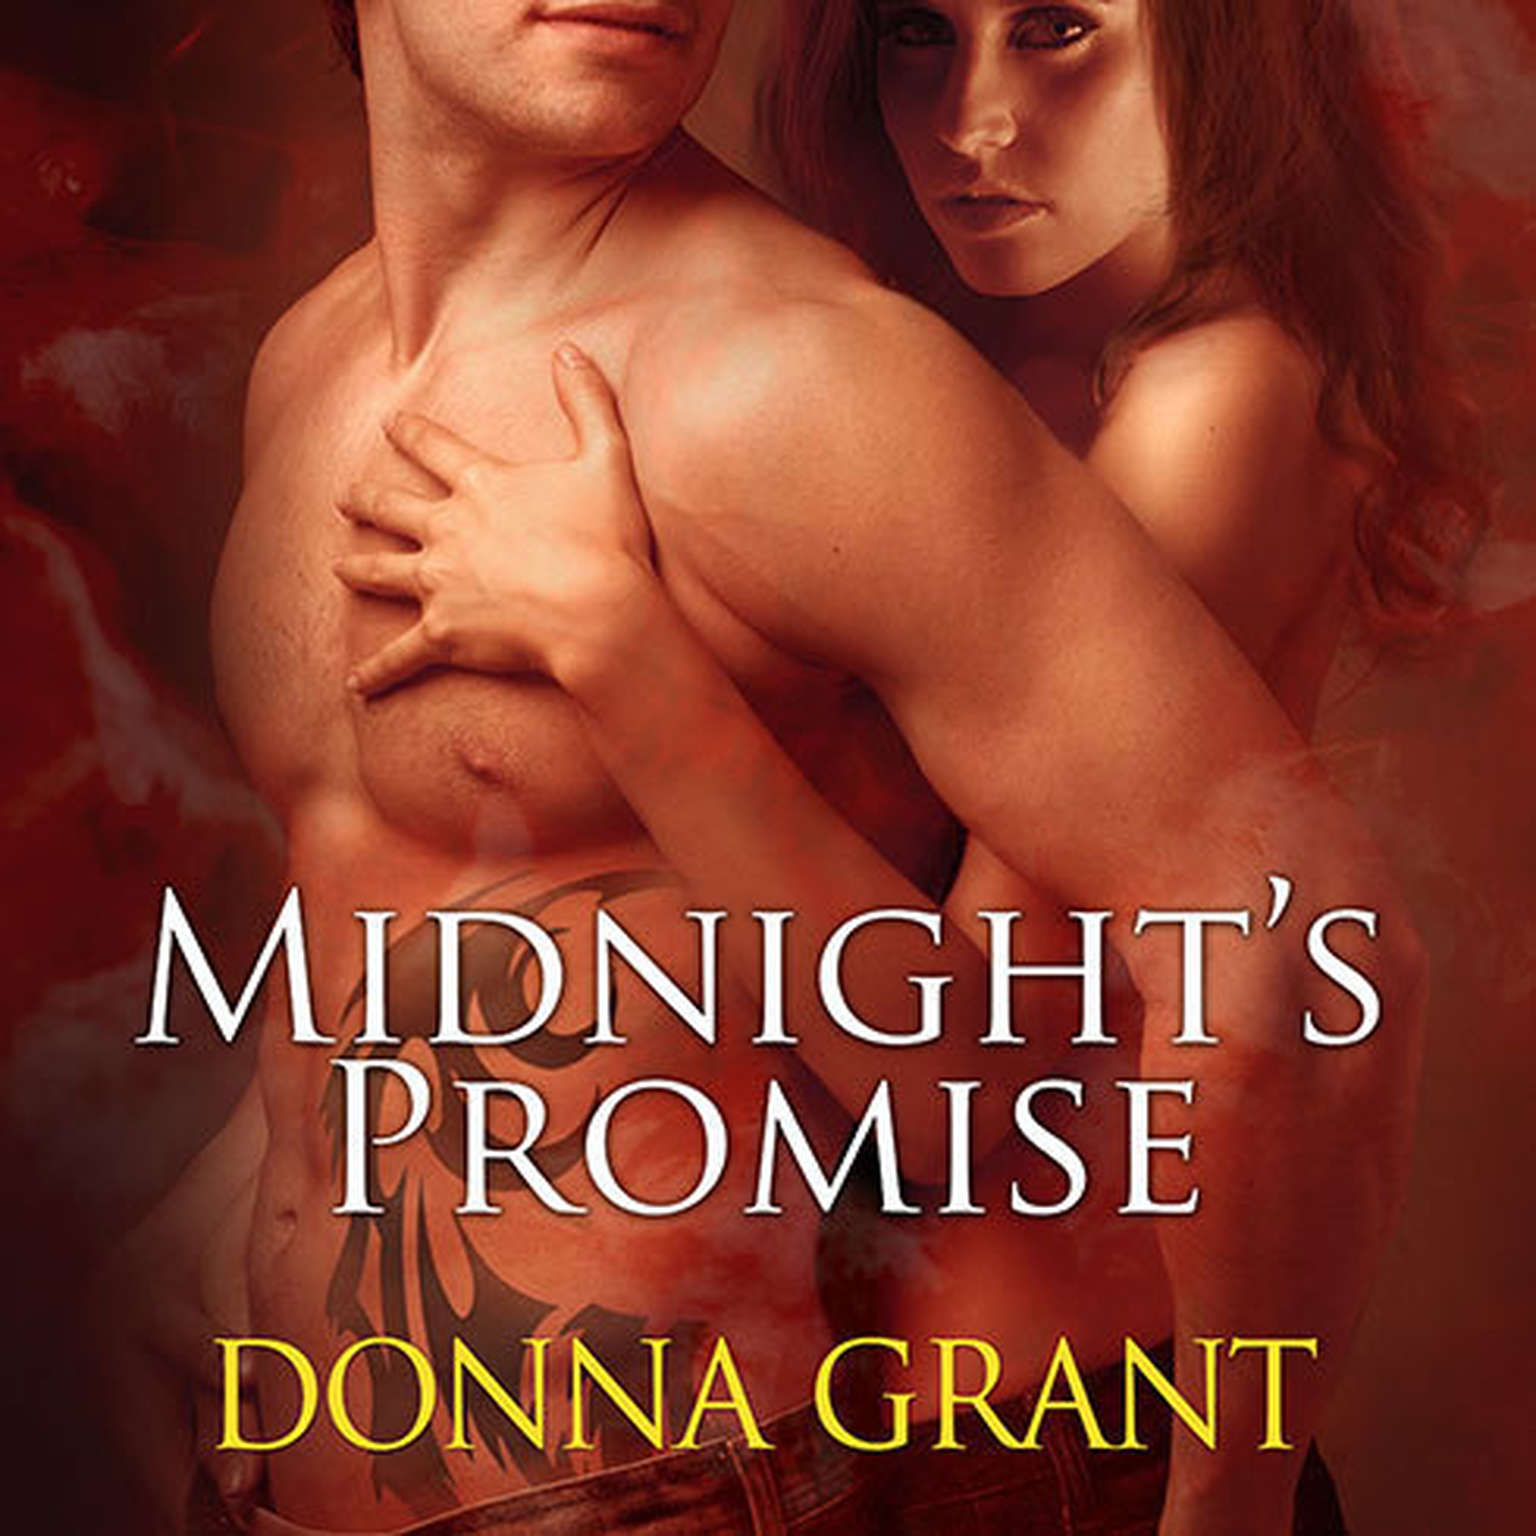 Printable Midnight's Promise Audiobook Cover Art